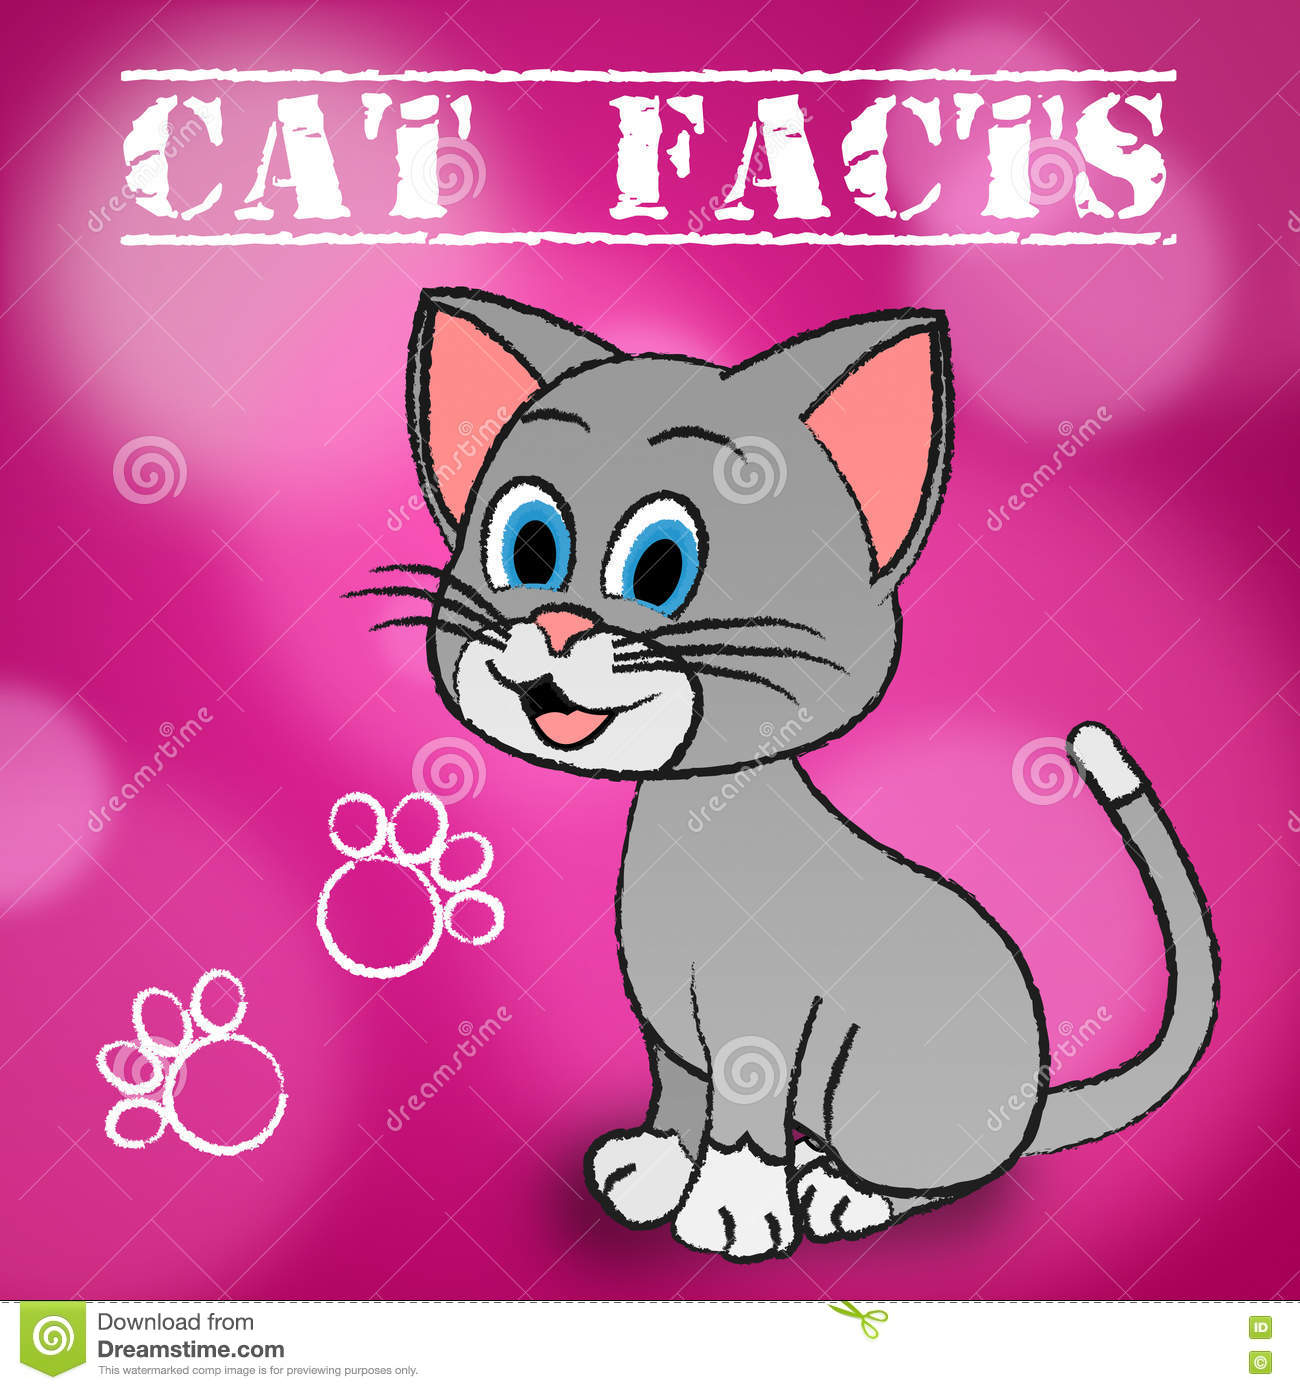 Cat Facts Indicates Details Kitty et animaux familiers